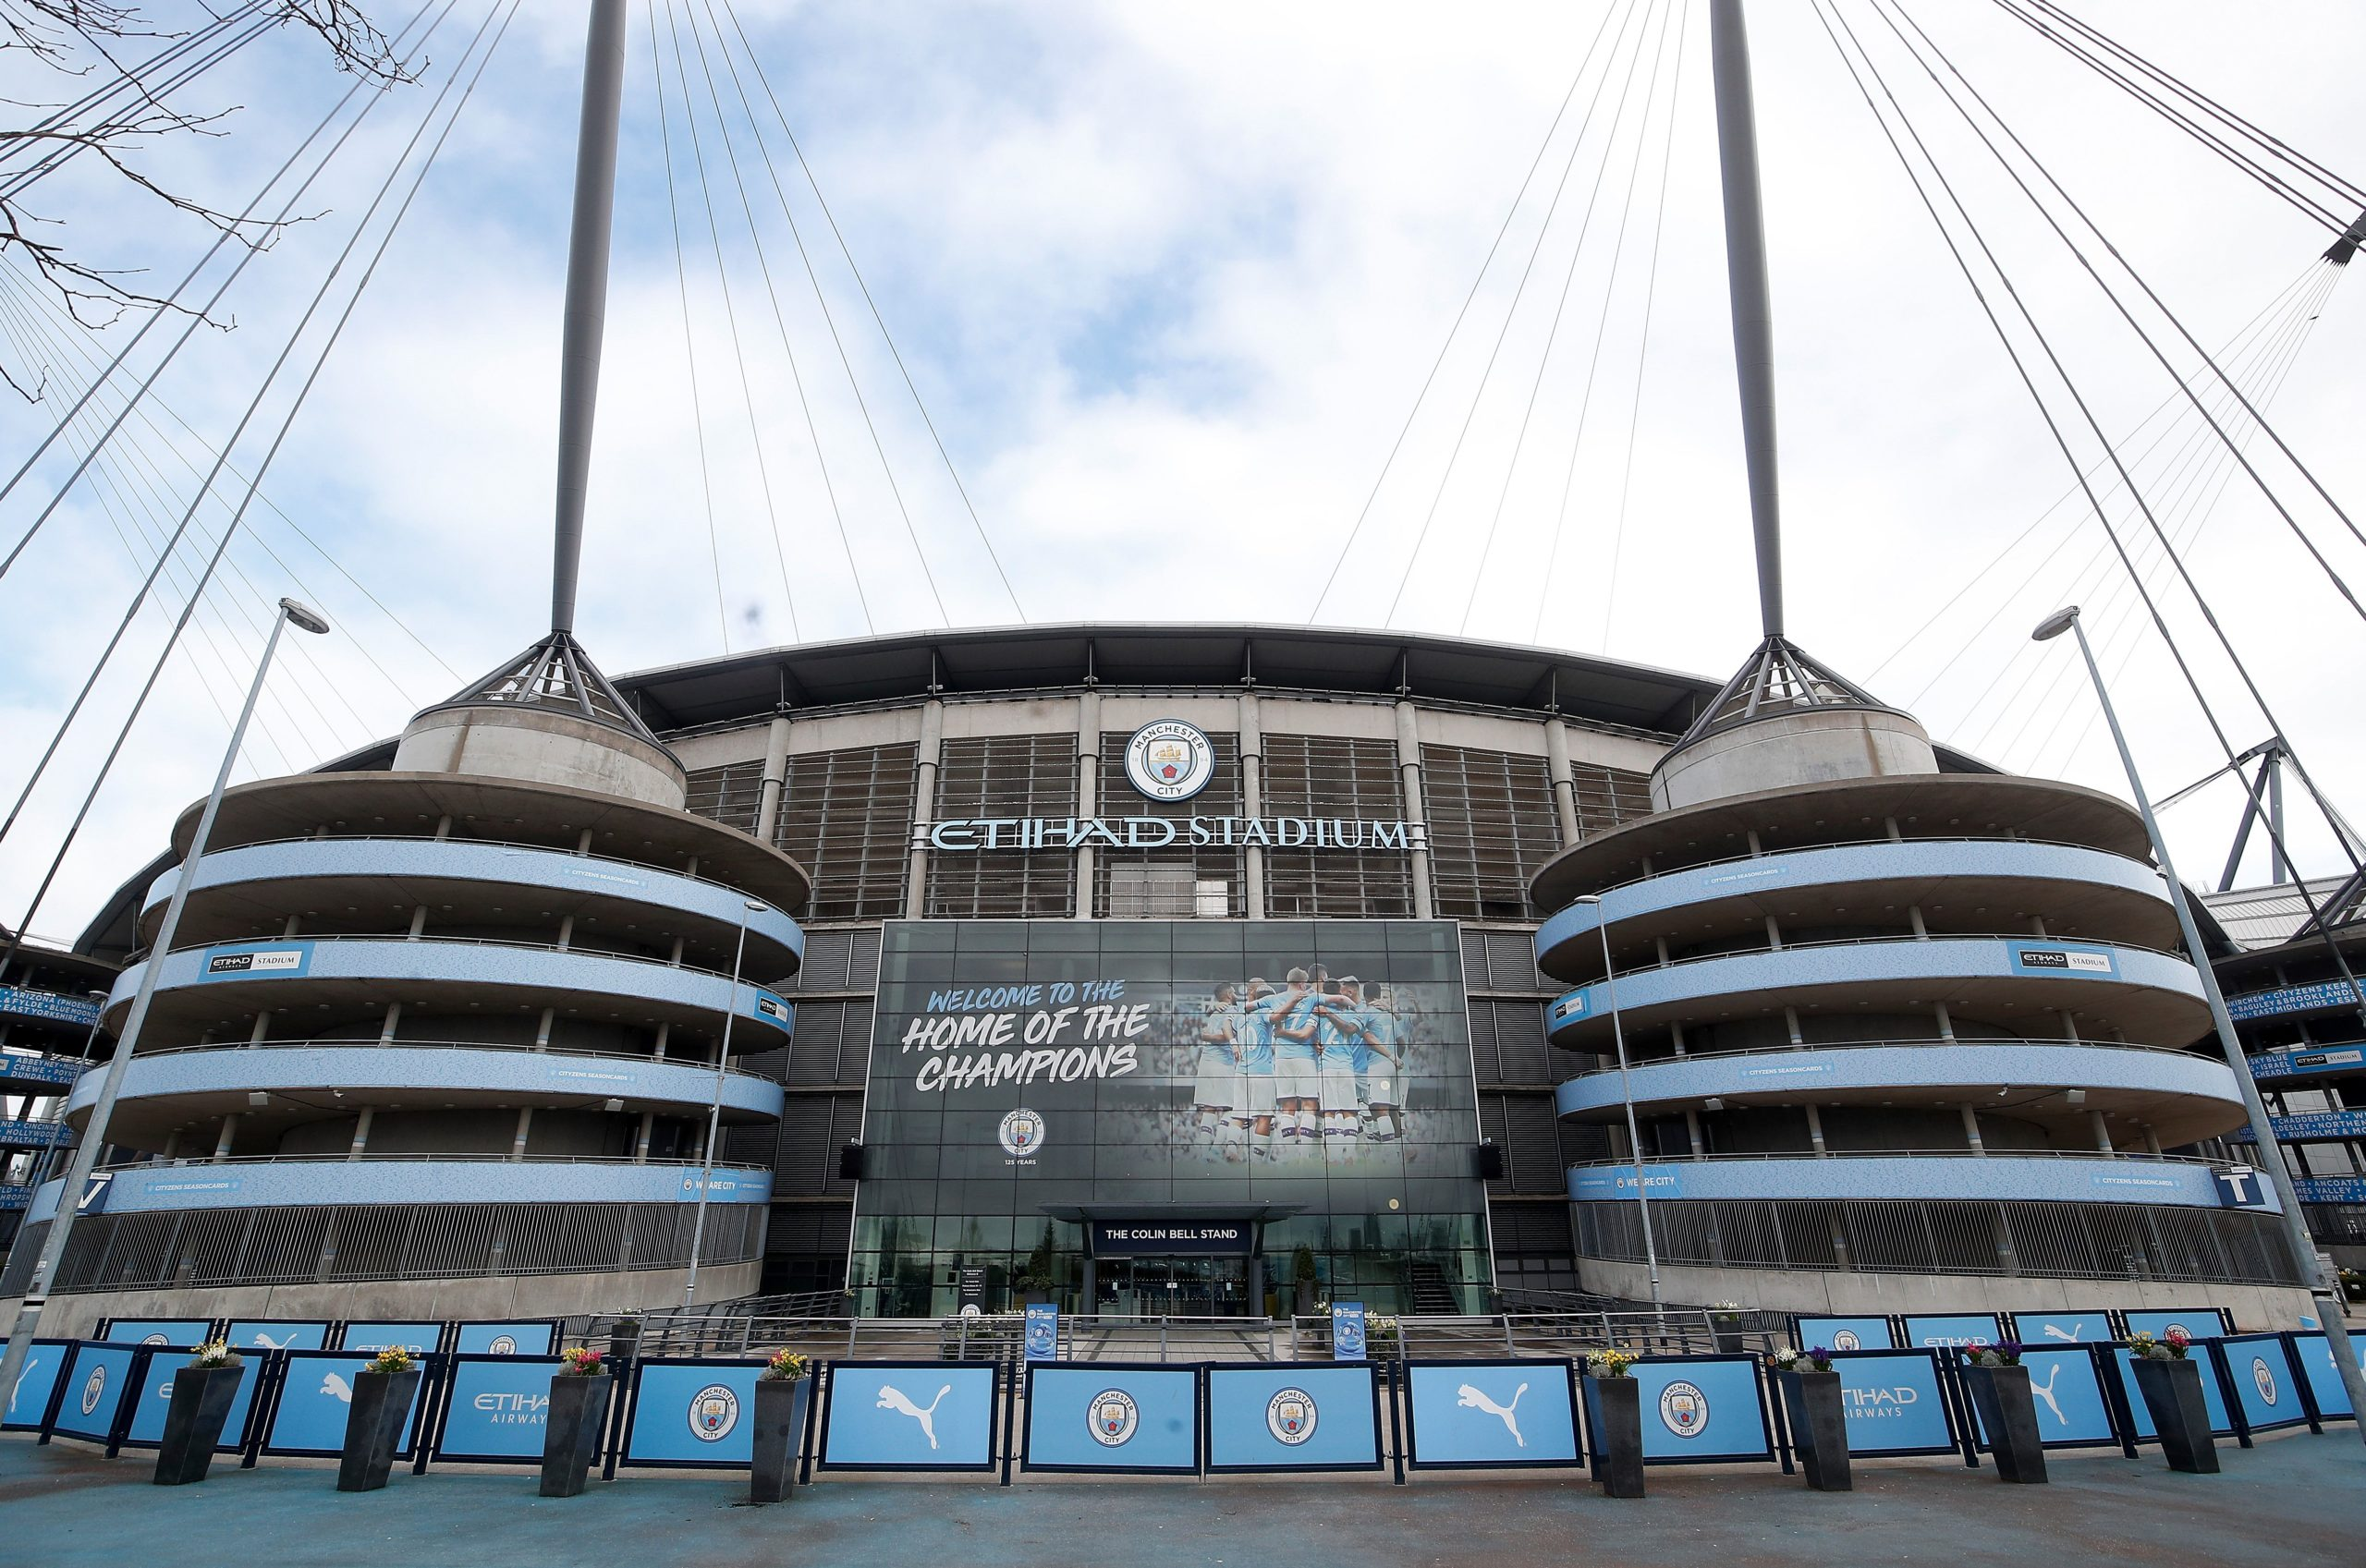 L'Etihad Stadium, estadi del Manchester City | Europa Press